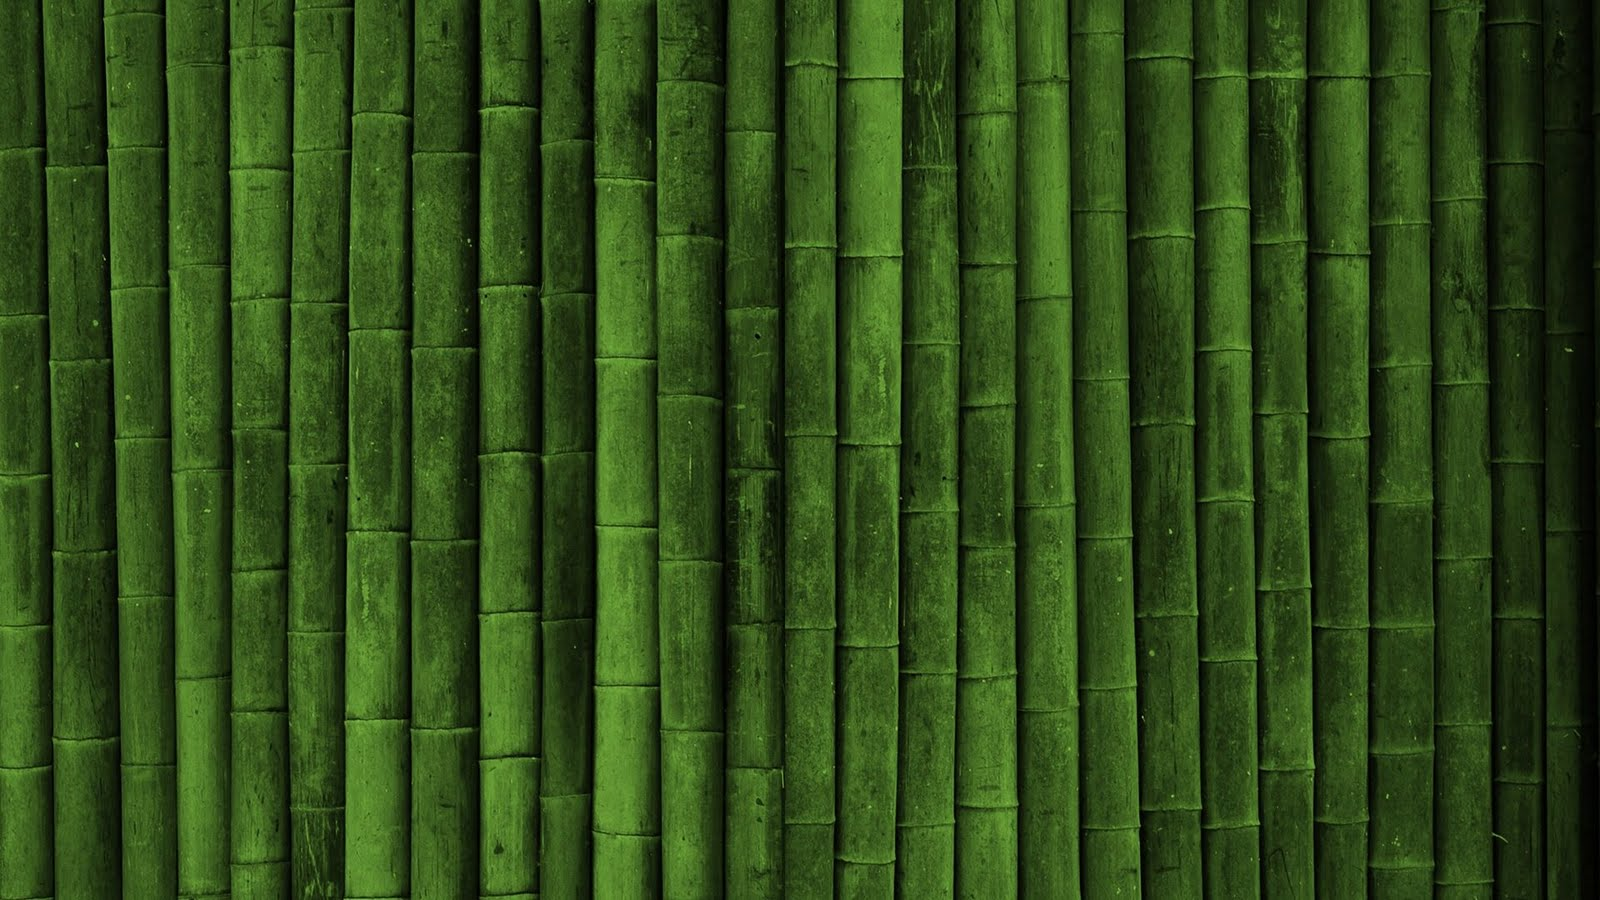 HD Bamboo Plant Wallpapers | Desktop Wallpapers